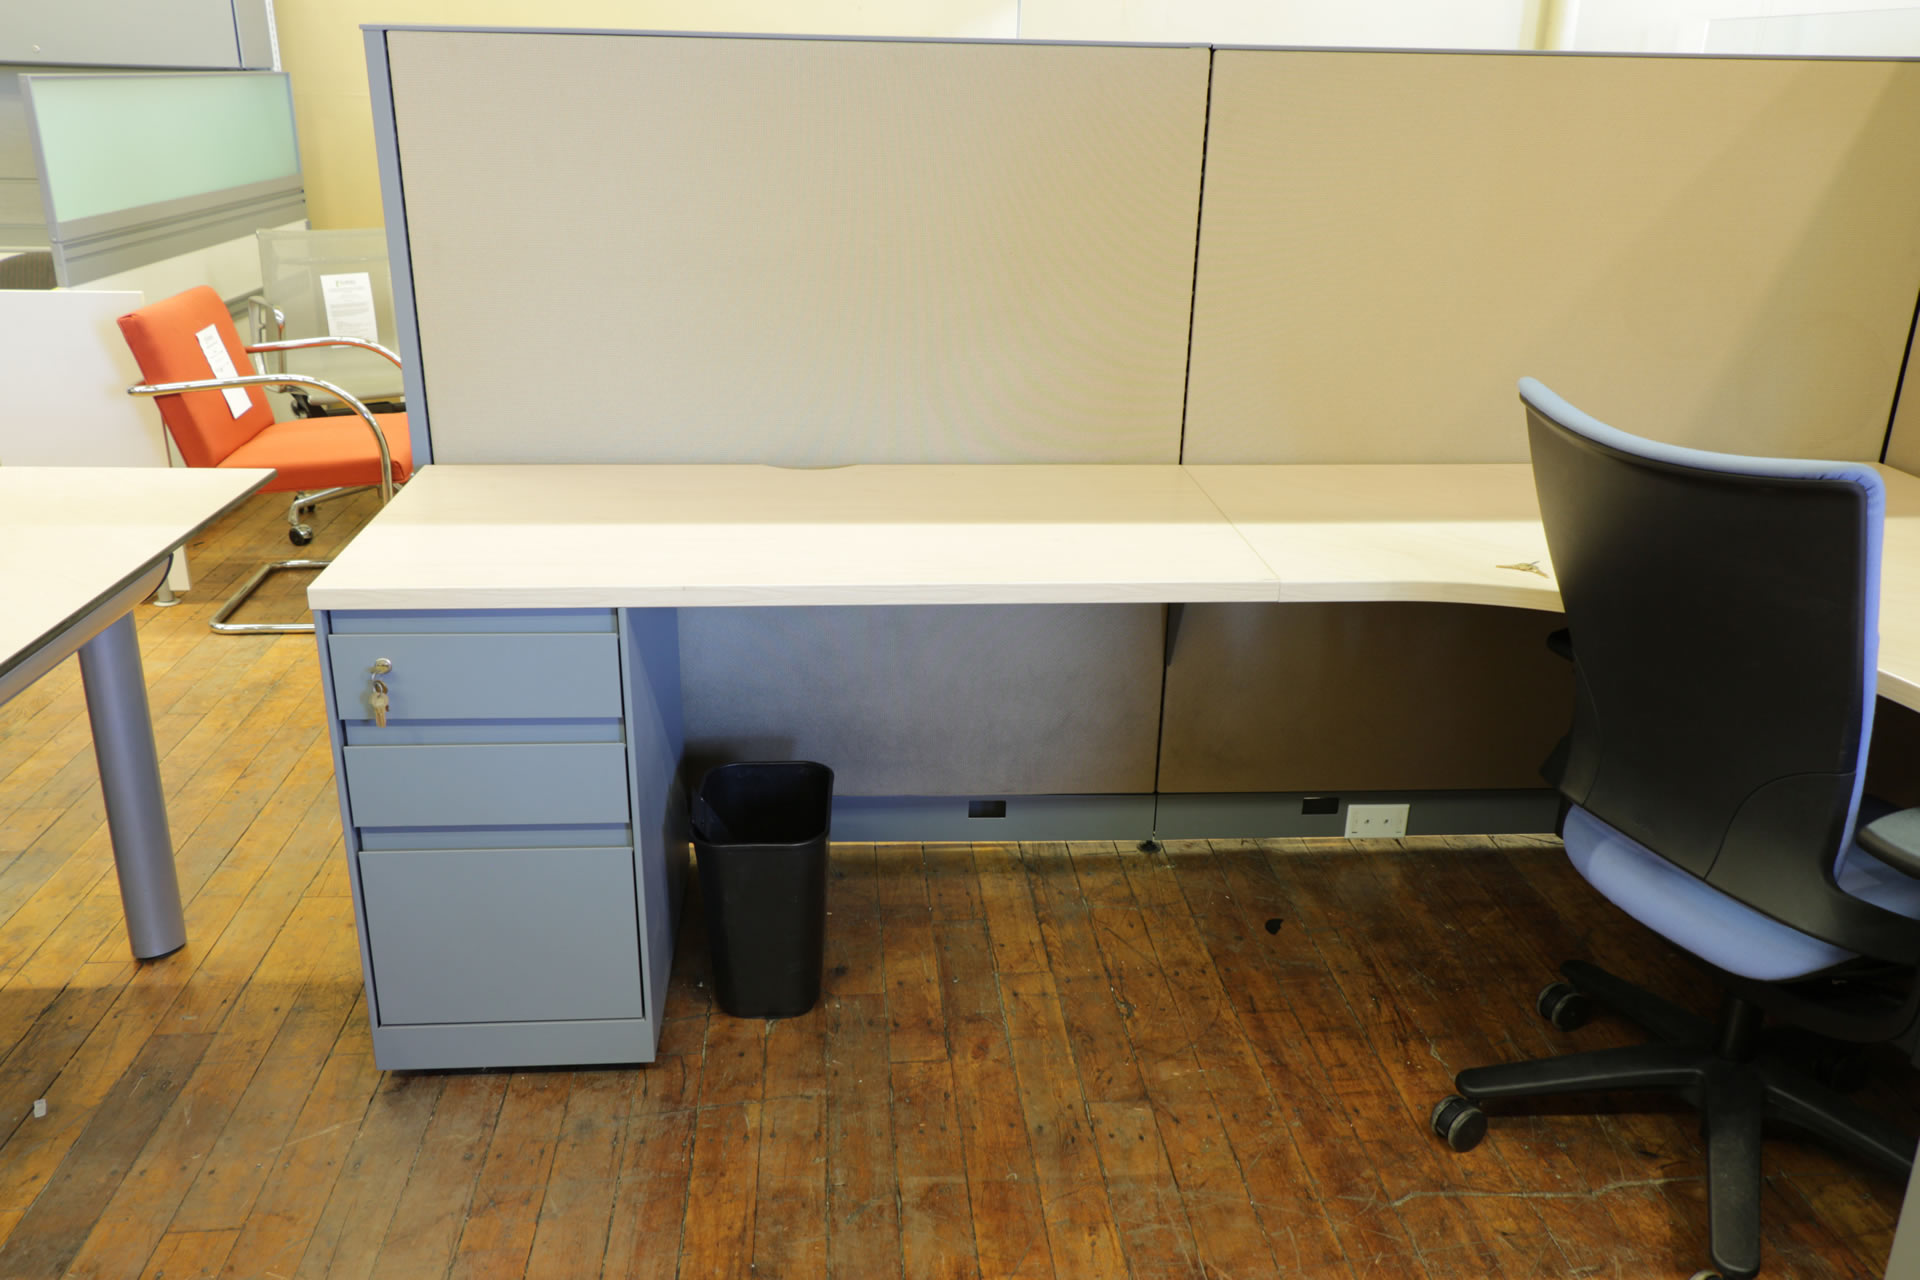 peartreeofficefurniture_peartreeofficefurniture_peartreeofficefurniture_img_9333.jpg